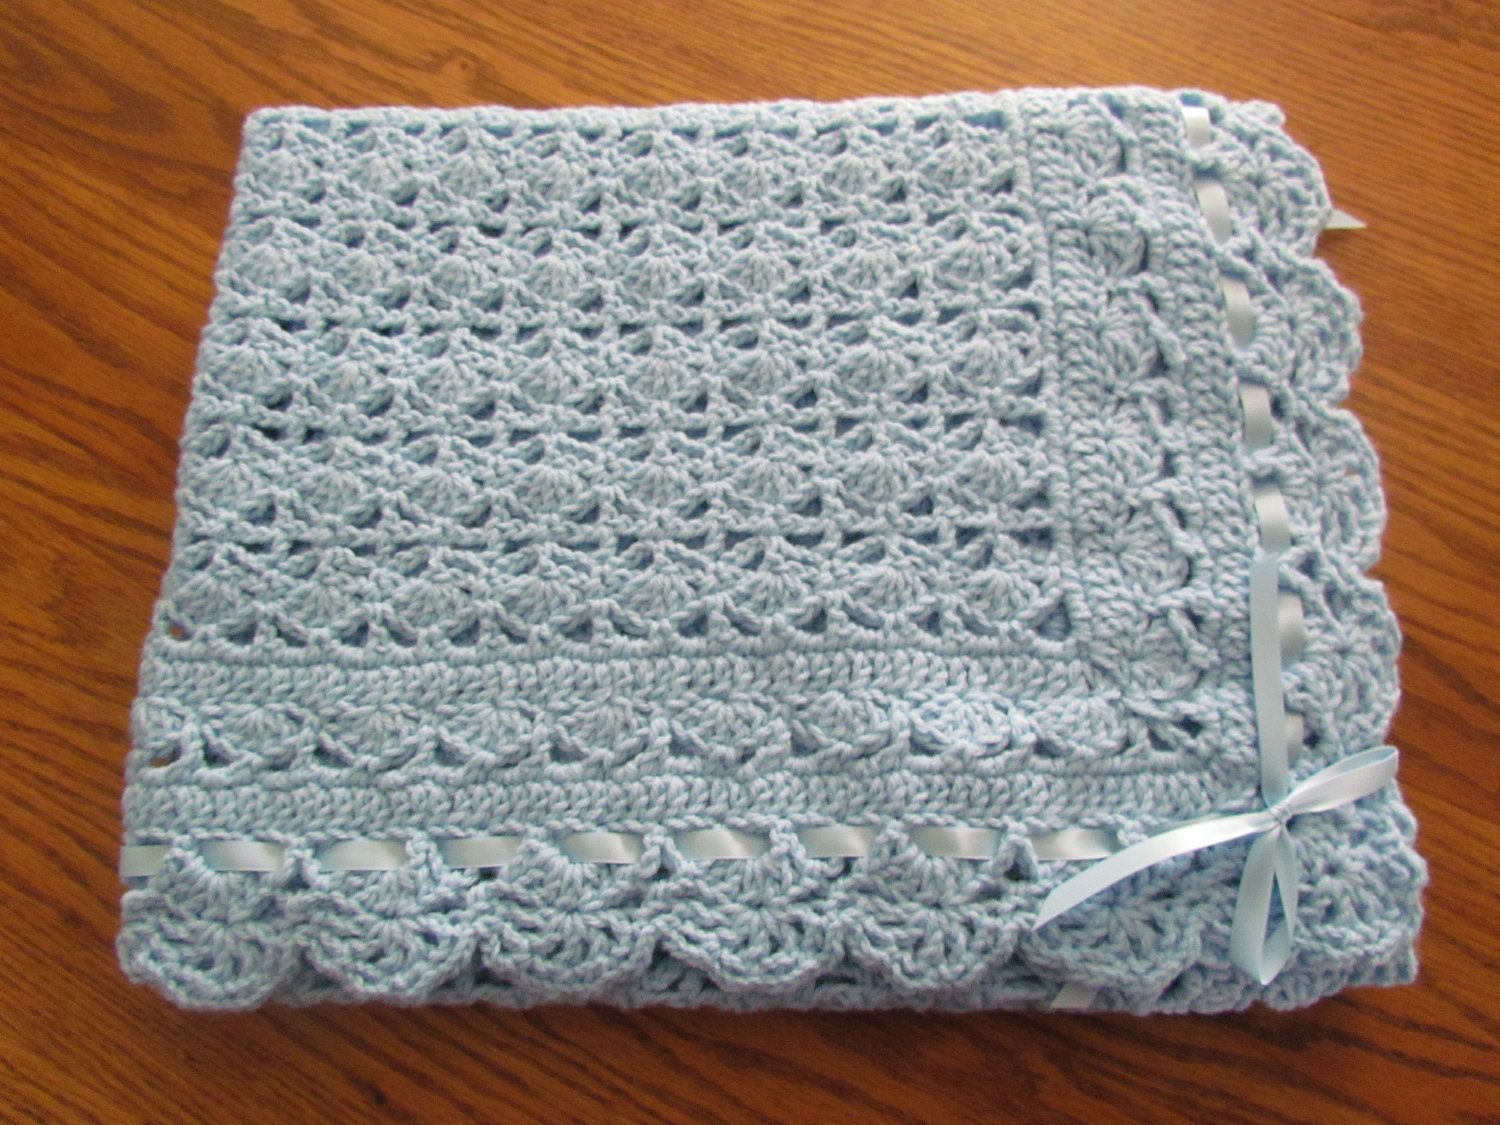 Free Crochet Blanket Patterns For Toddlers : Blue Baby Afghan Christening Crochet Crib Size Heirloom ...